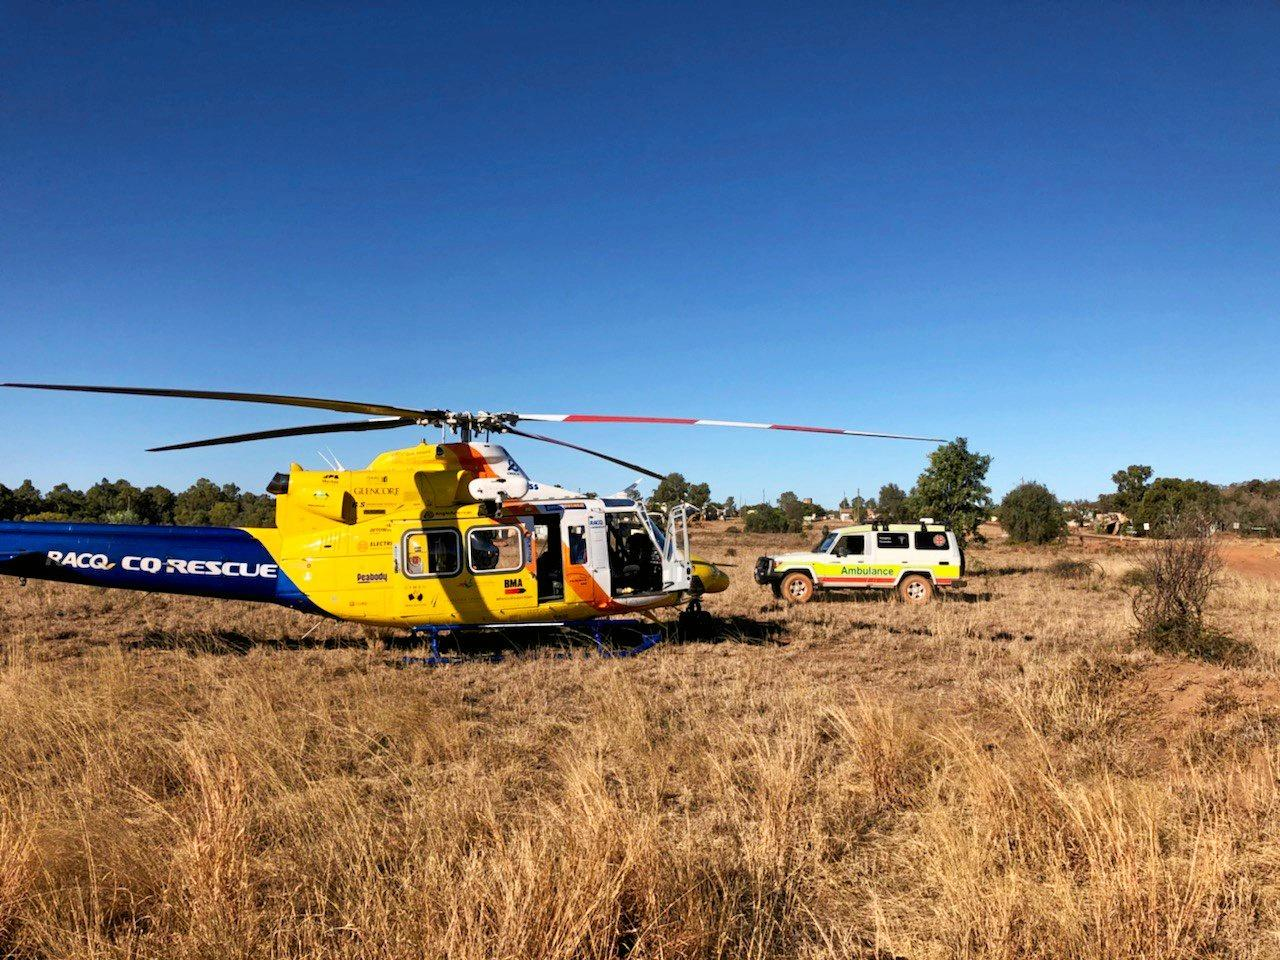 RACQ CQ Rescue landed on a property near Mt Coolon, about 262km west of Mackay, on Monday afternoon to transport a truck driver who was kicked in the head by a bull.